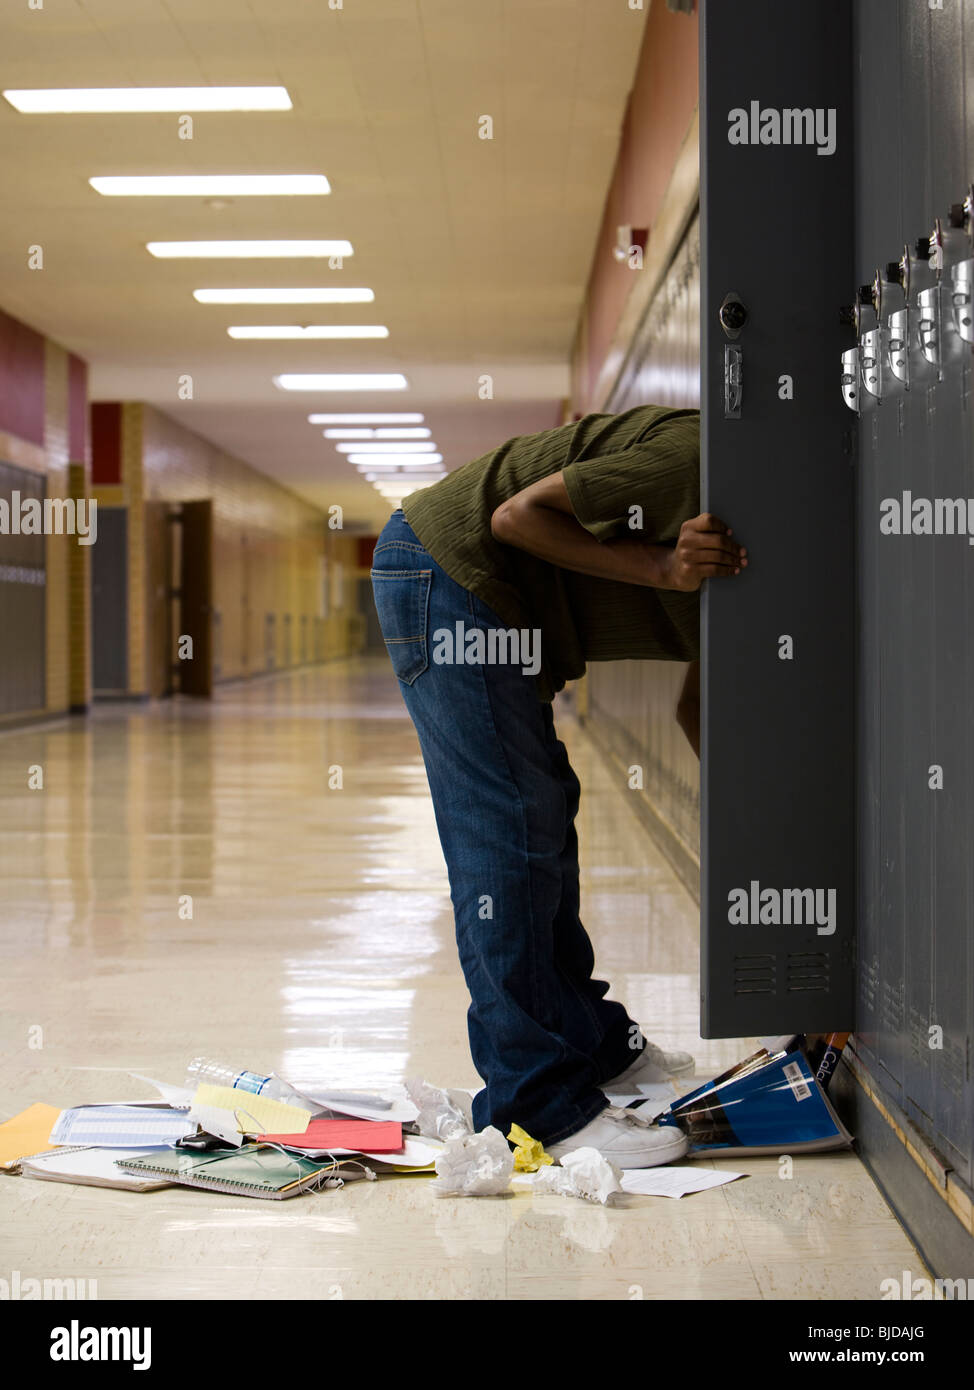 High School student cleaning out his locker. - Stock Image